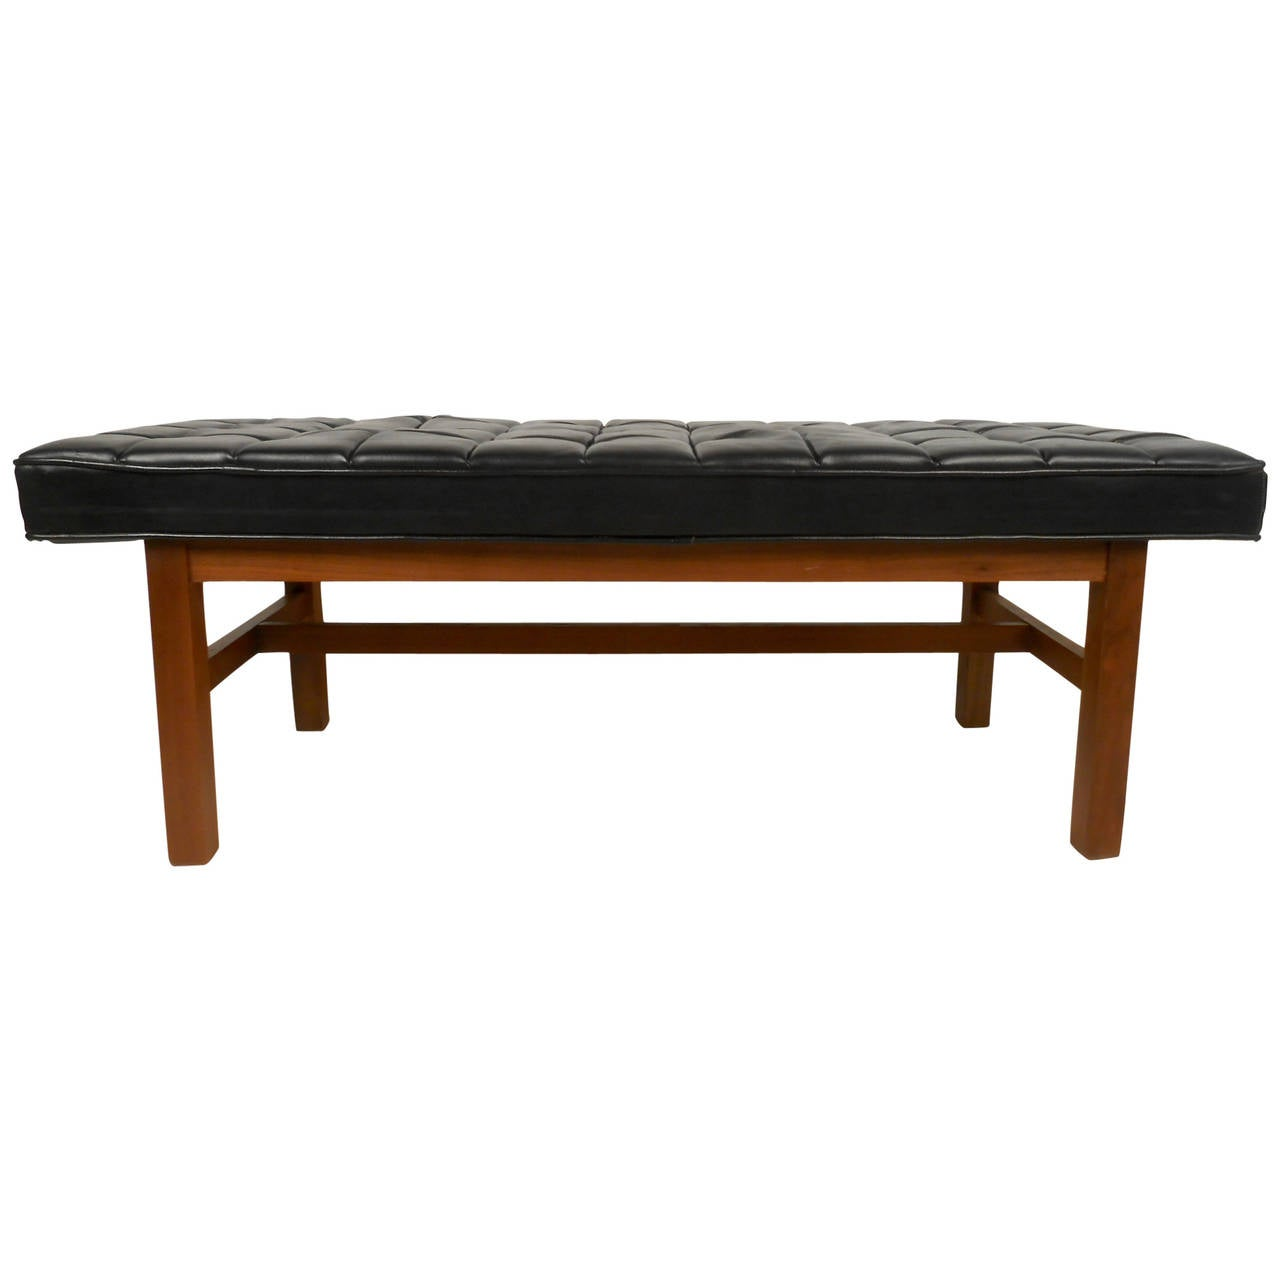 midcentury modern tufted vinyl bench . midcentury modern tufted vinyl bench for sale at stdibs